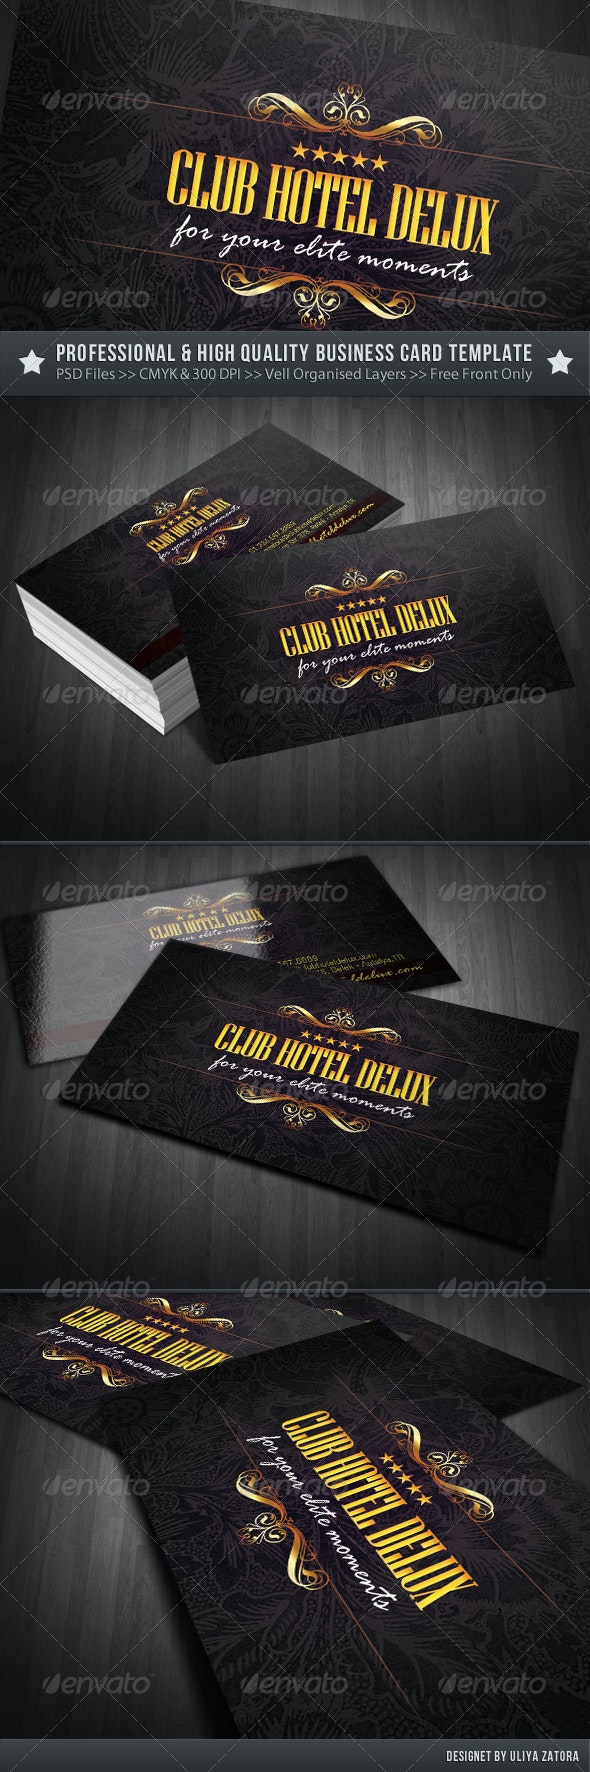 Royal Resort Hotel Business Card - Industry Specific Business Cards